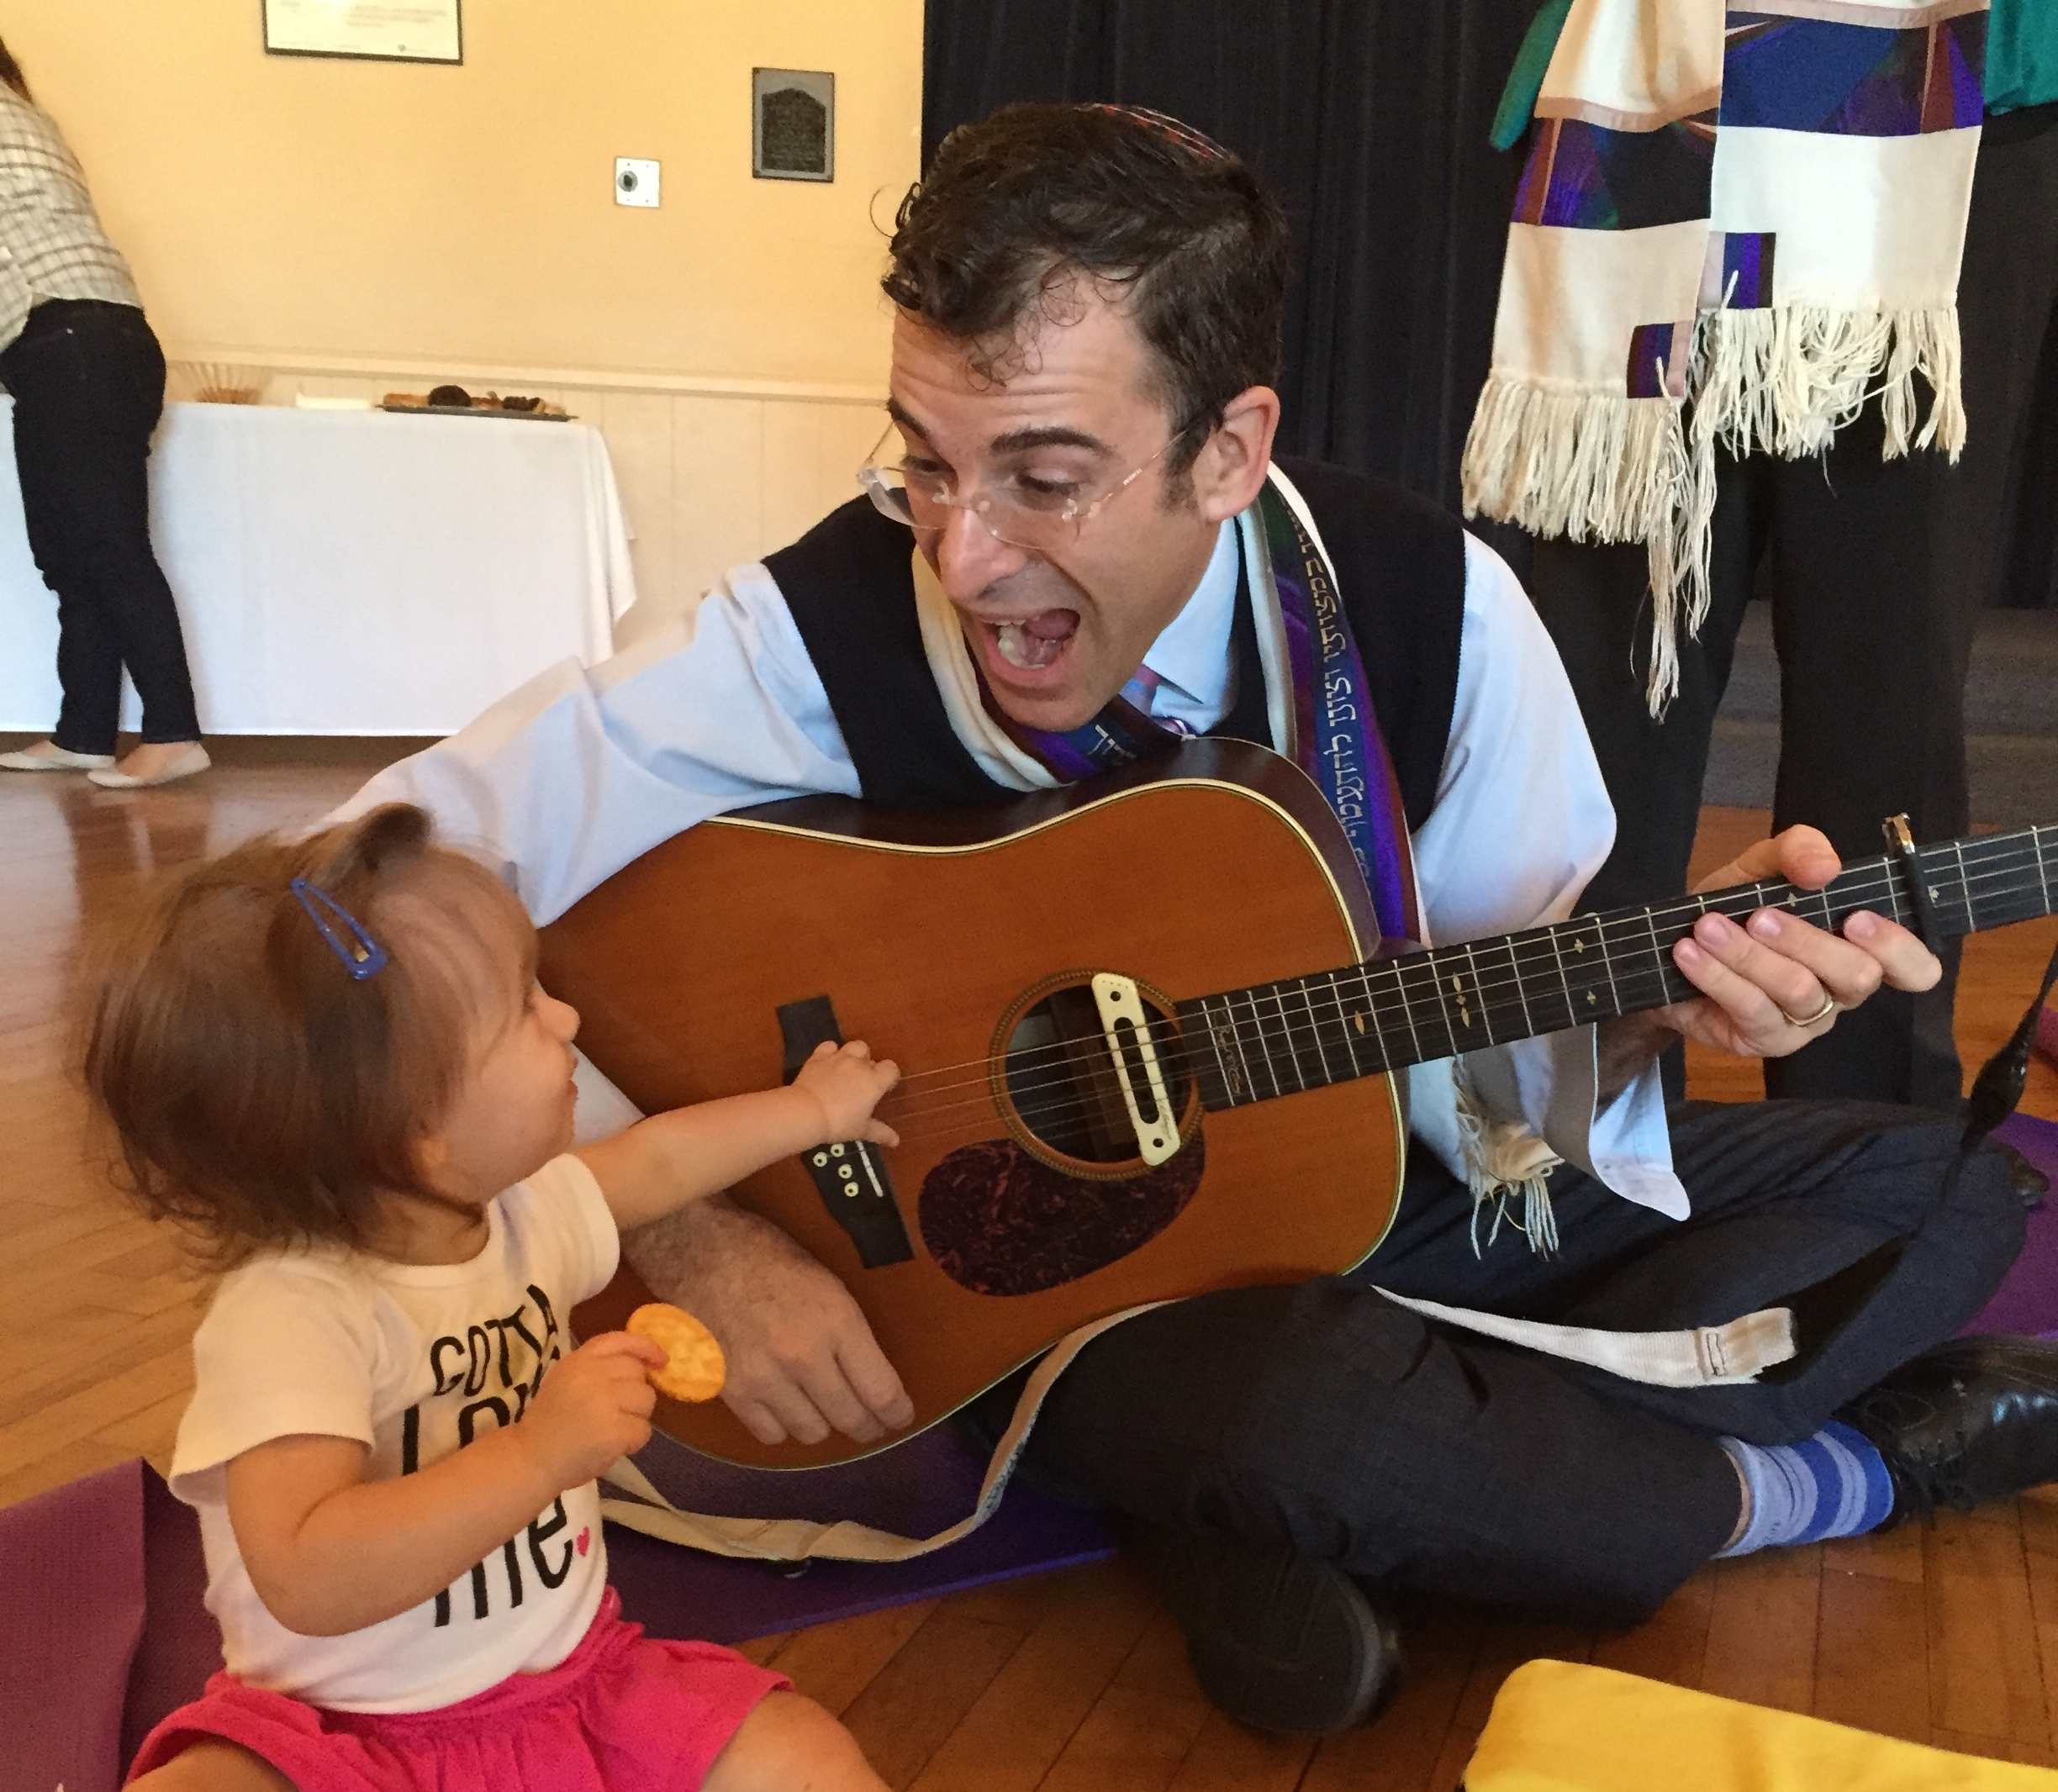 Tiny Tot Shabbat - For 0-2 year olds, join us the first Friday of every month from 9:00-9:30AM.Because you are never too young to celebrate Shabbat at Temple Akiba.